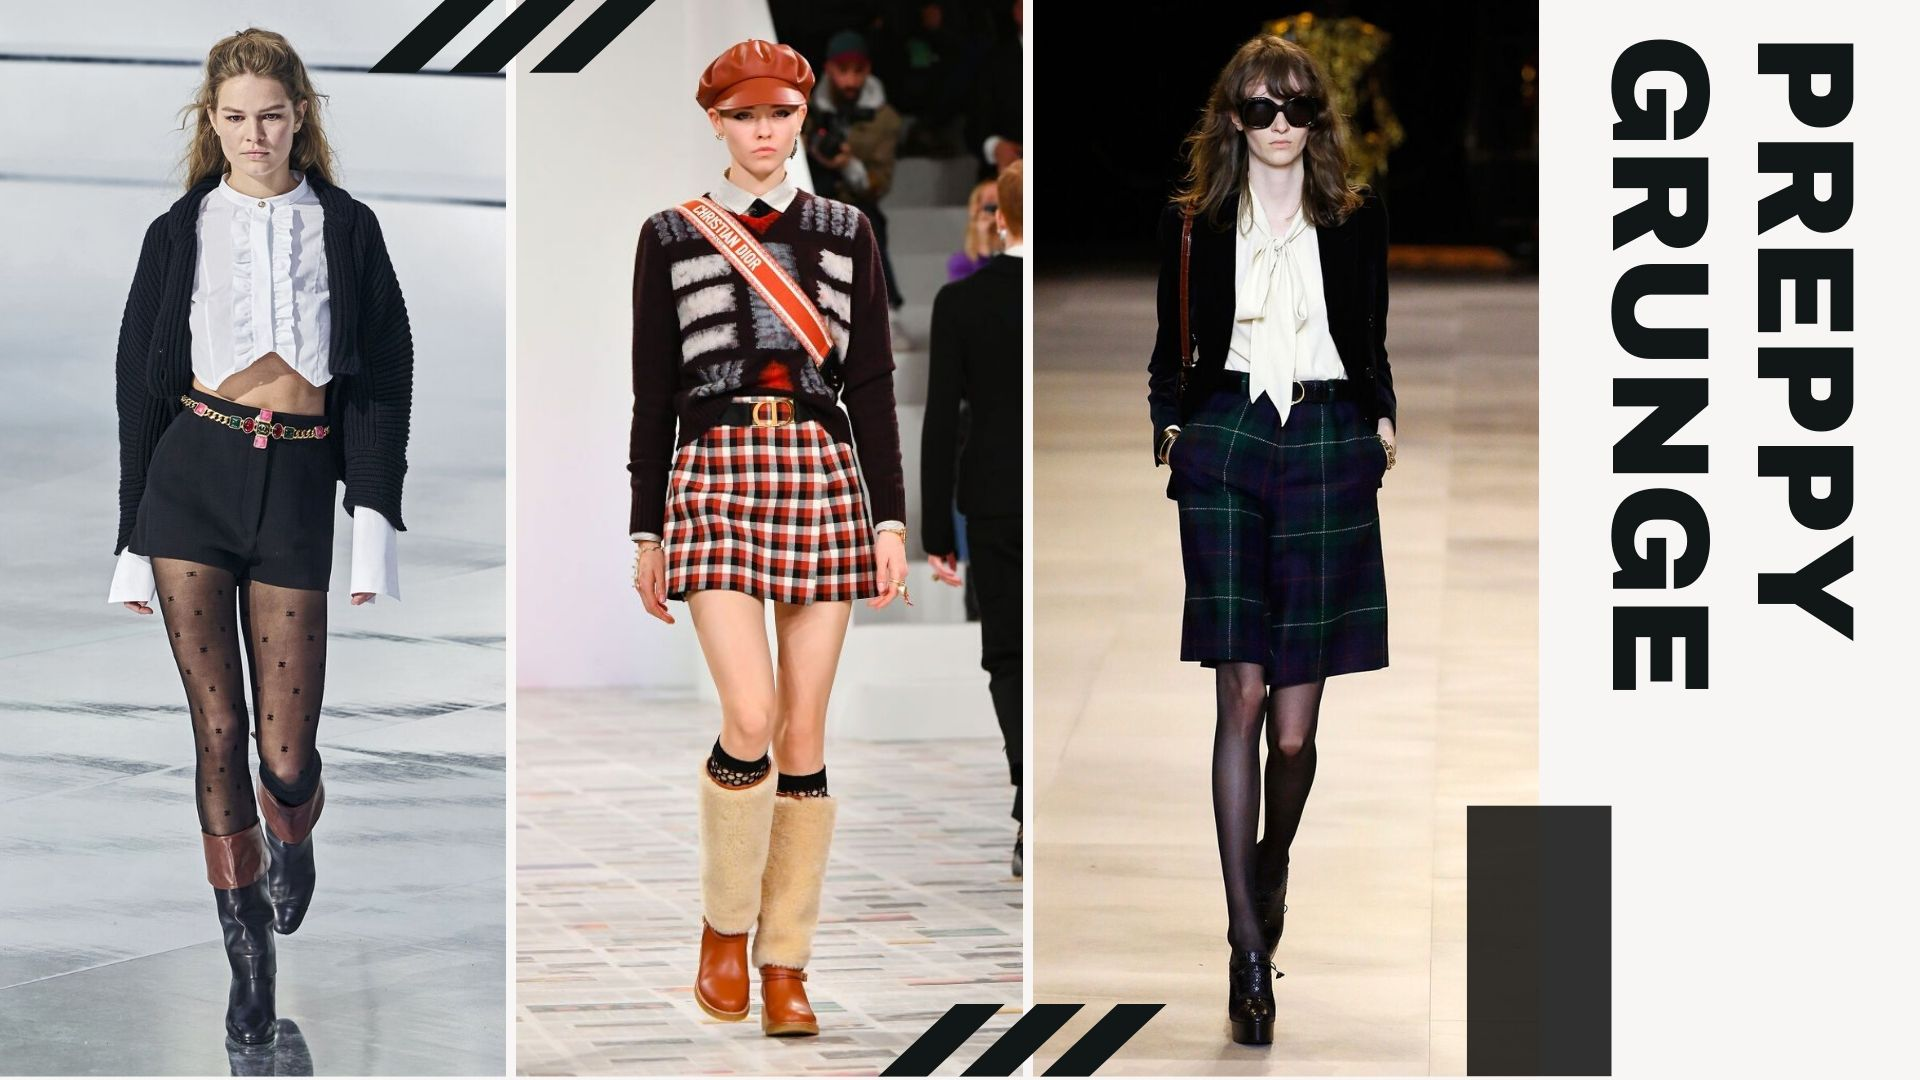 TOP 5 TRENDS FROM PFW F/W - Preppy Grunge